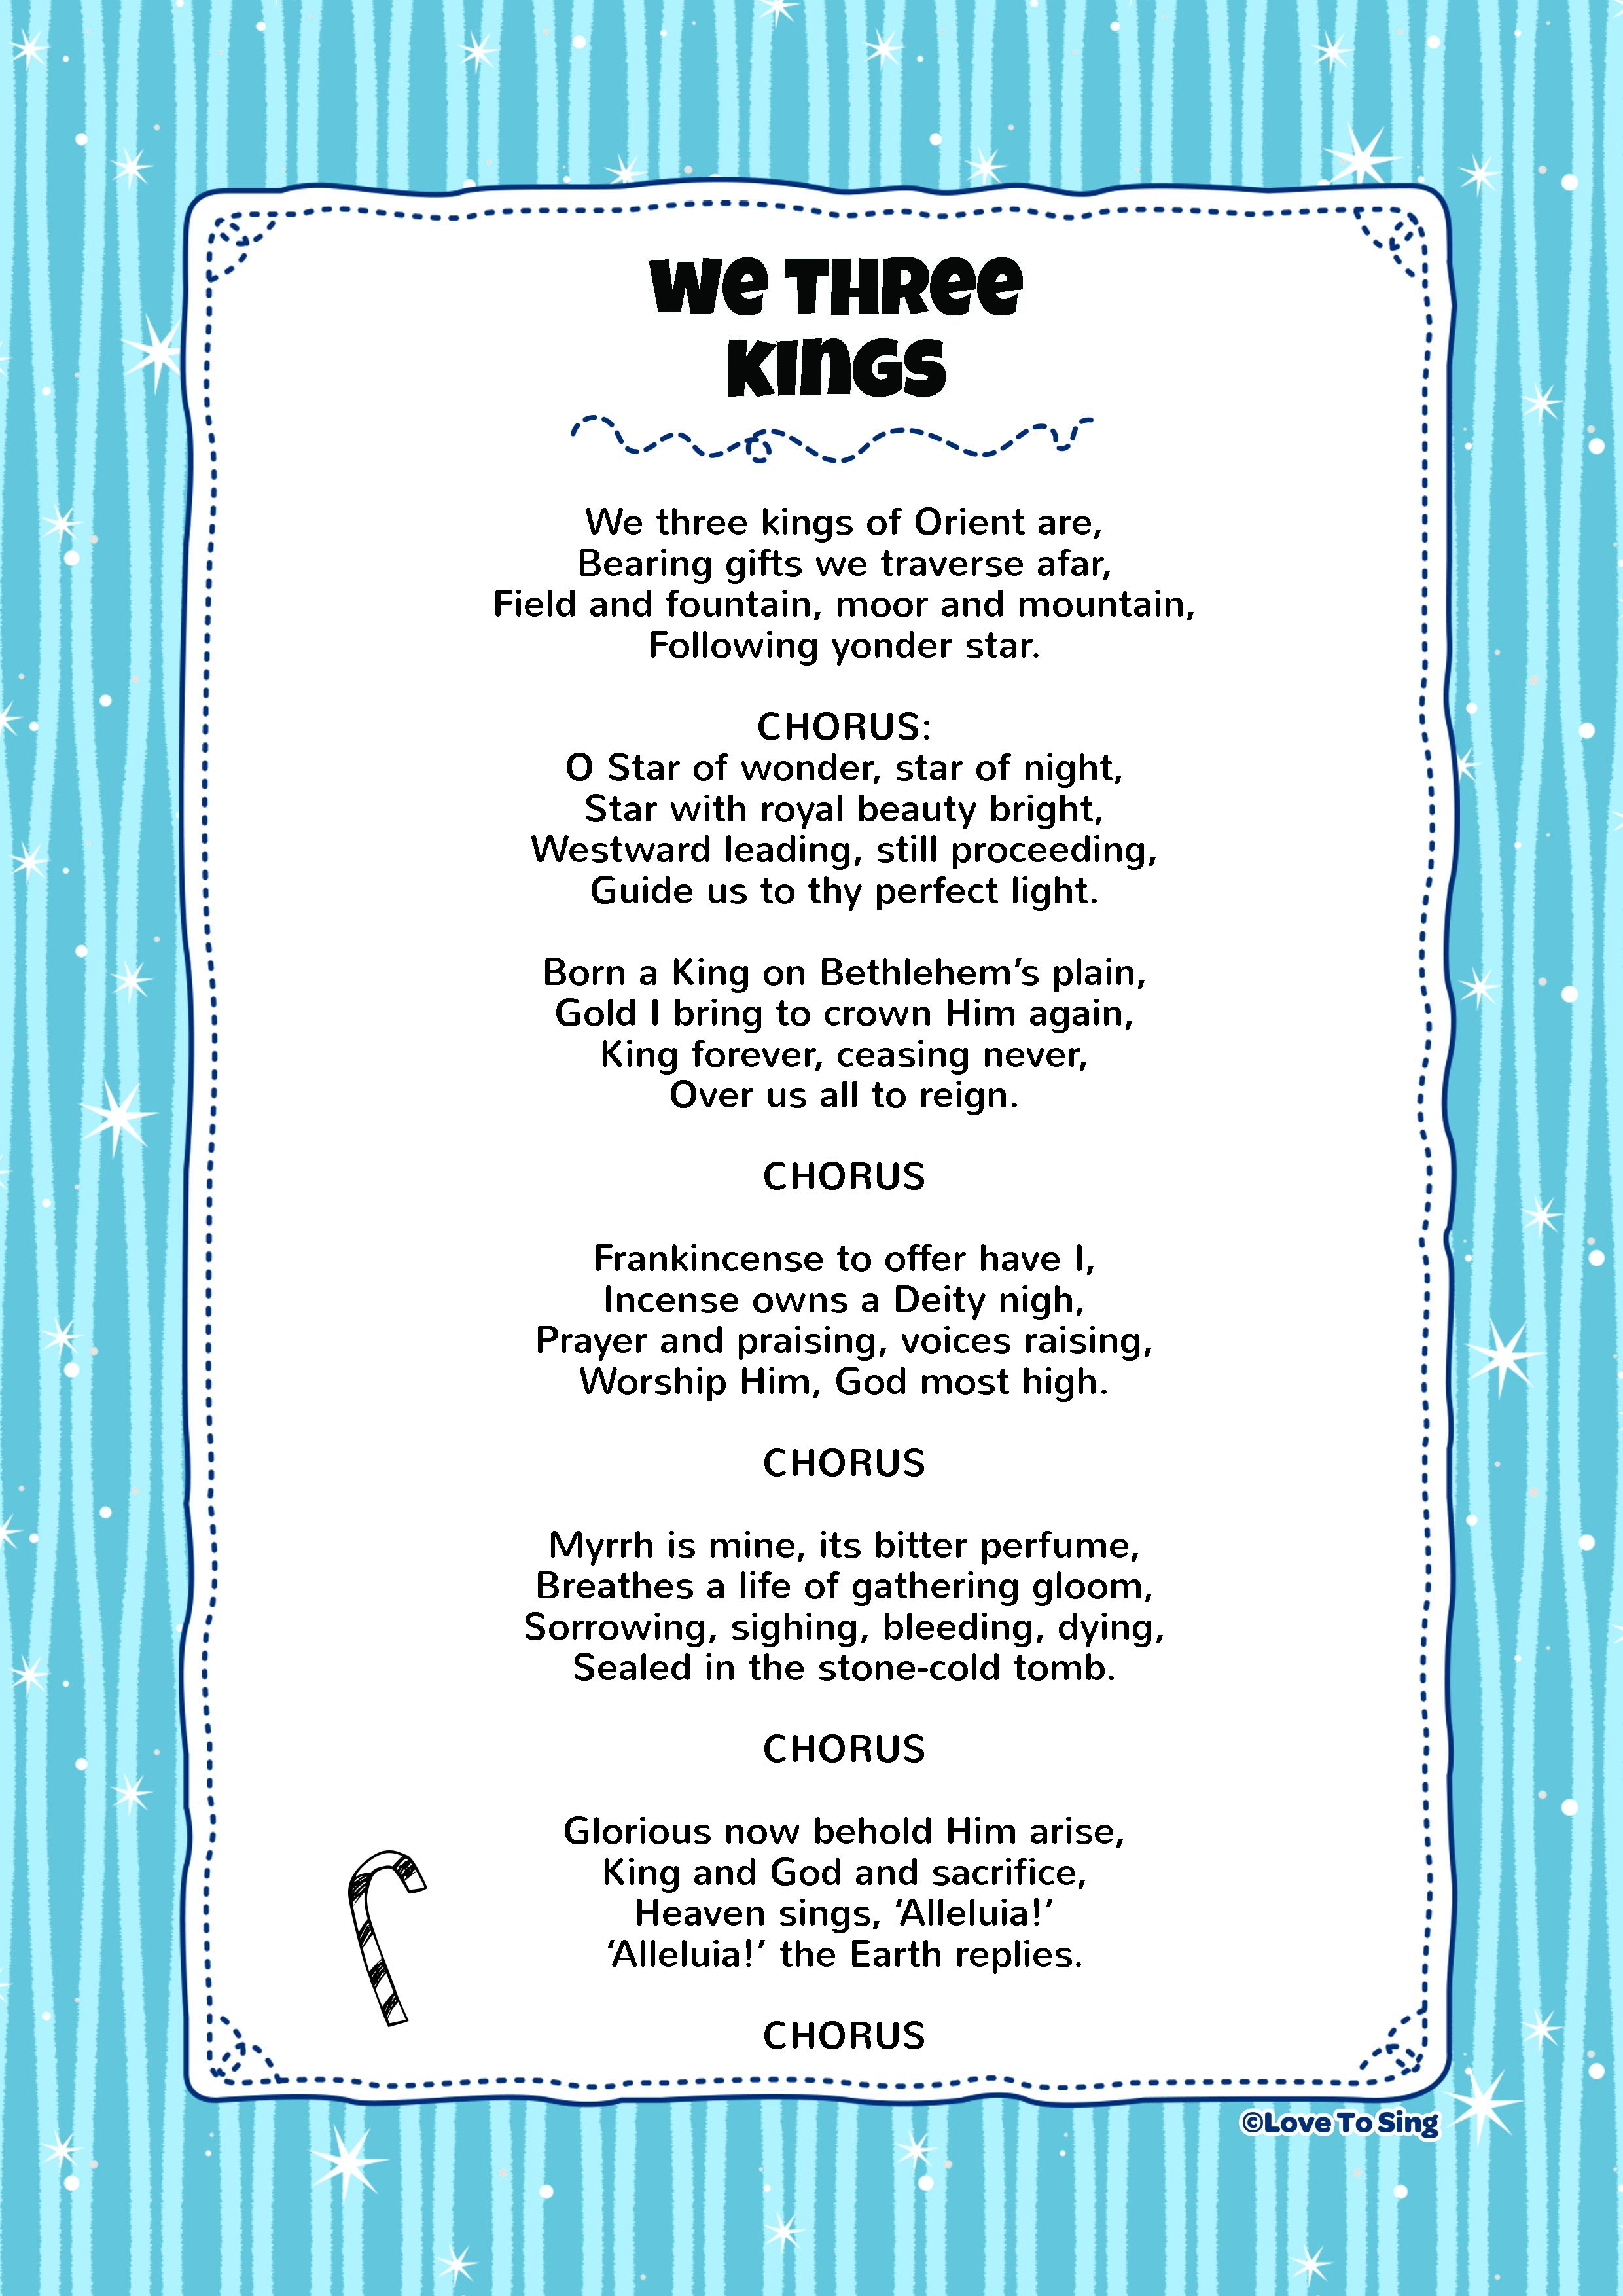 graphic about We Three Kings Lyrics Printable titled We 3 Kings Little ones Video clip Track with No cost Lyrics Routines!